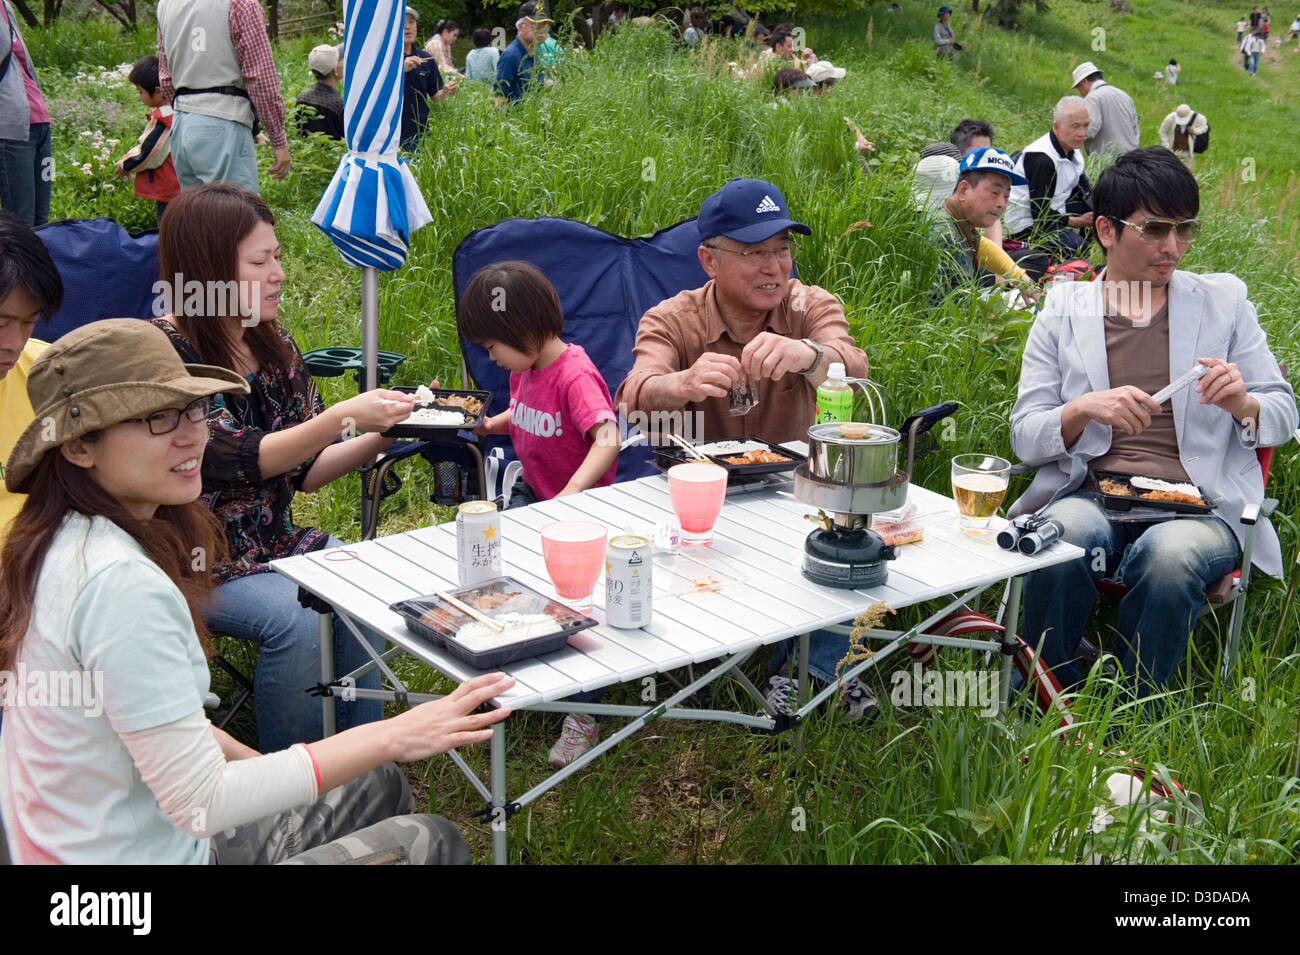 Outdoor family picnic Japanese style with fold-up table and chairs, camp stove and plenty of beer. - Stock Image